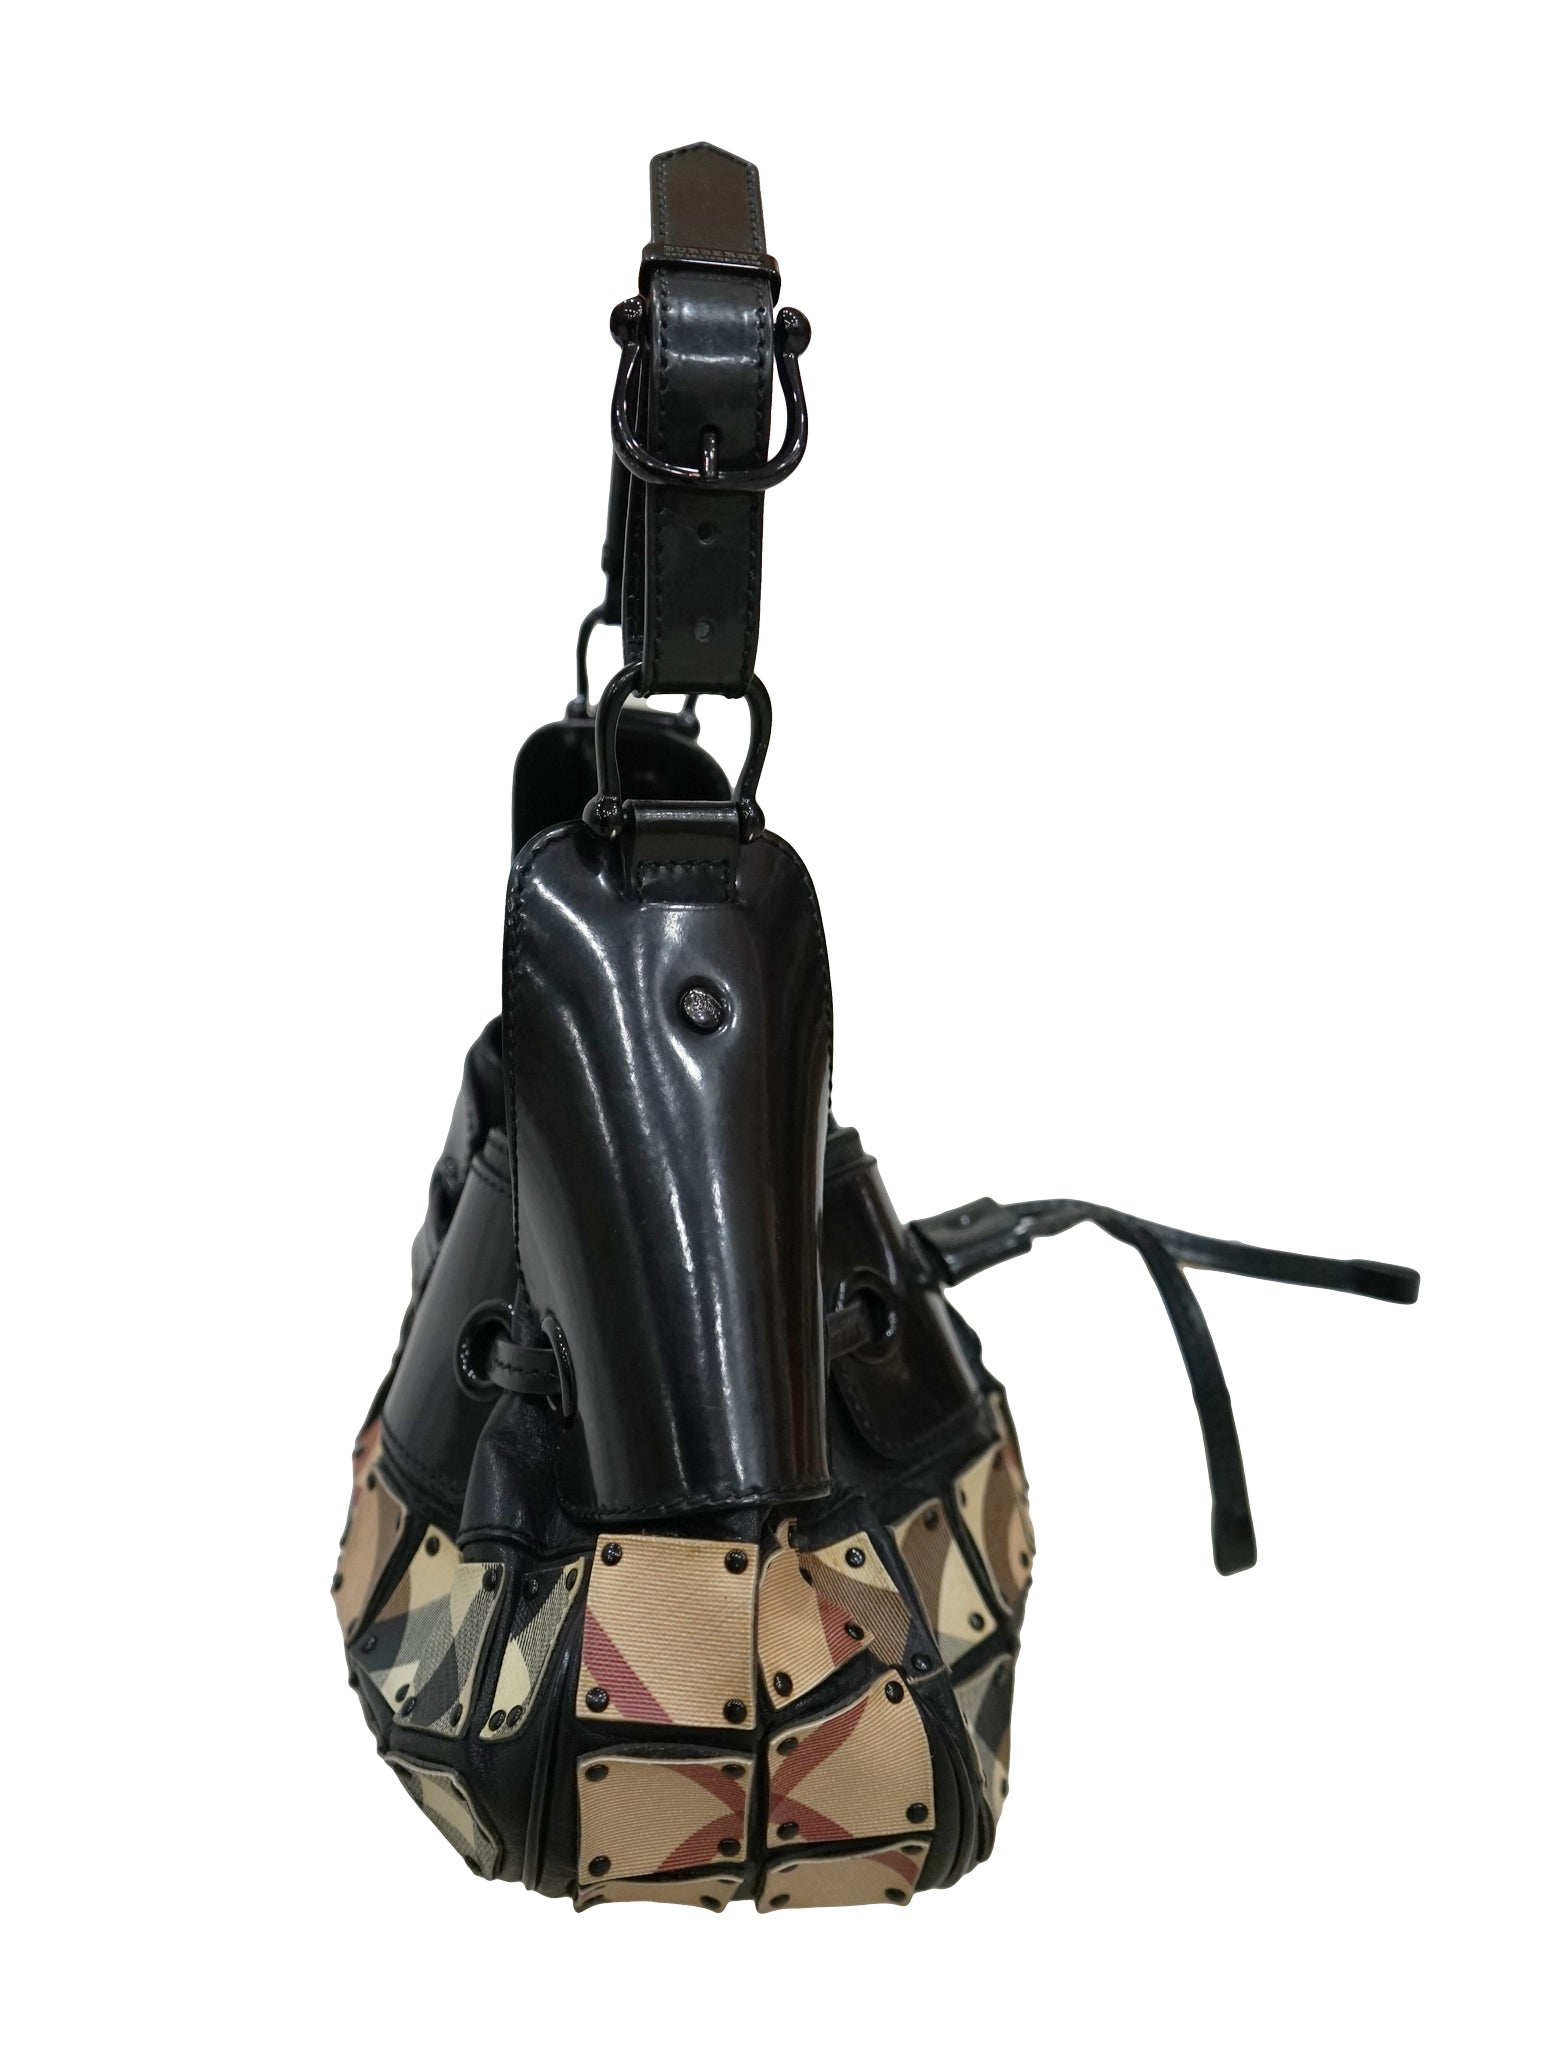 PATENT LEATHER & CHECK WARRIOR HOBO BAG